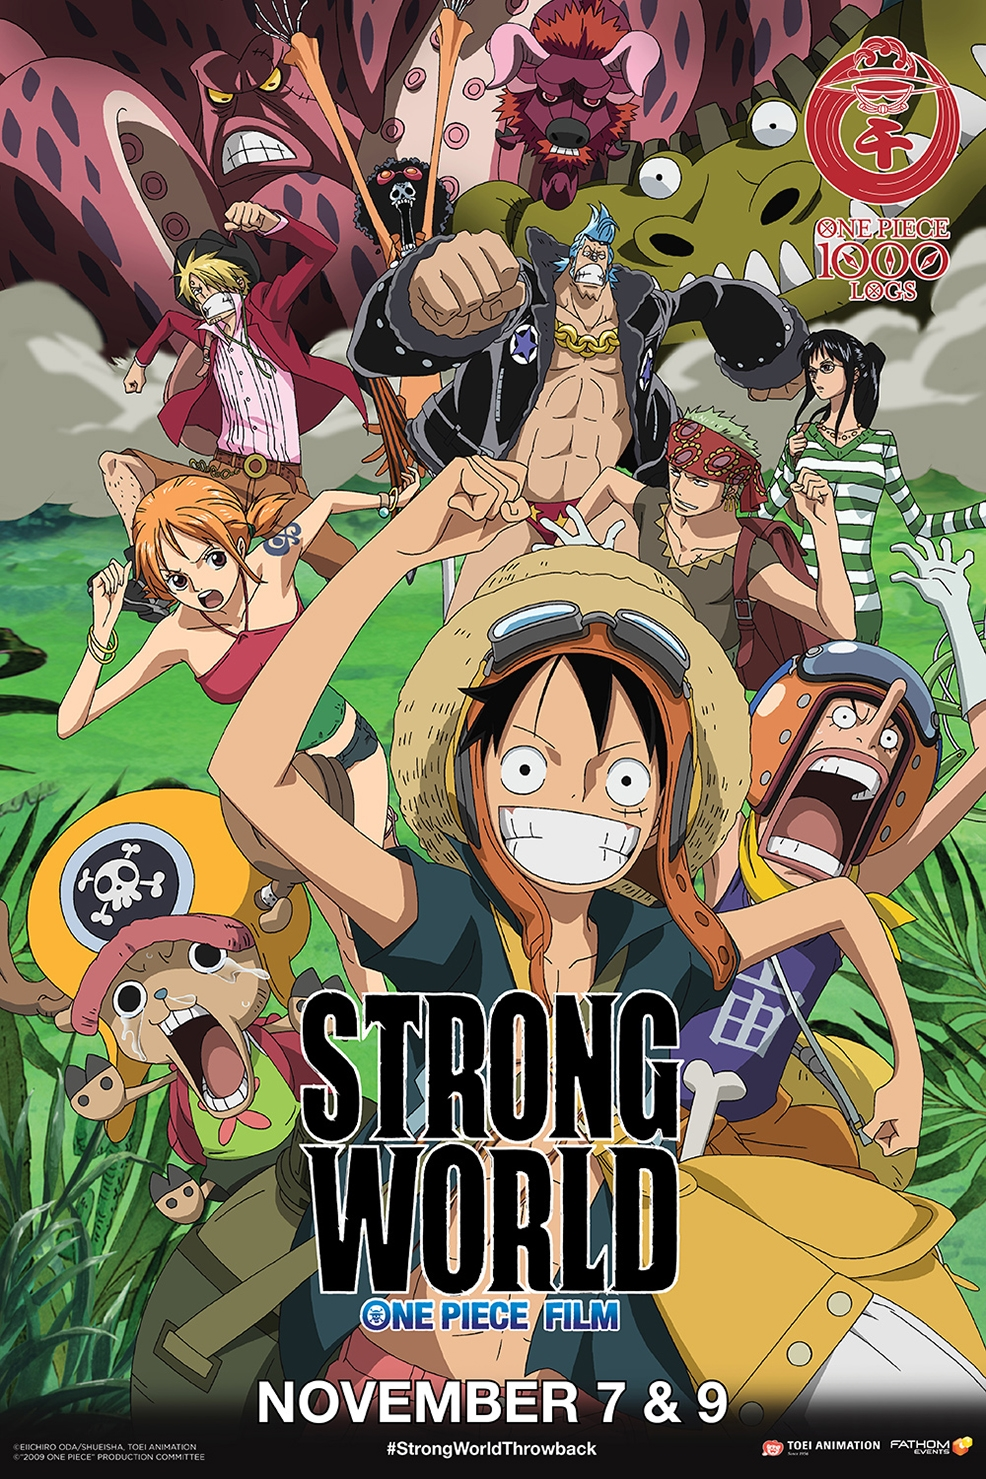 Poster of One Piece Film: Strong World